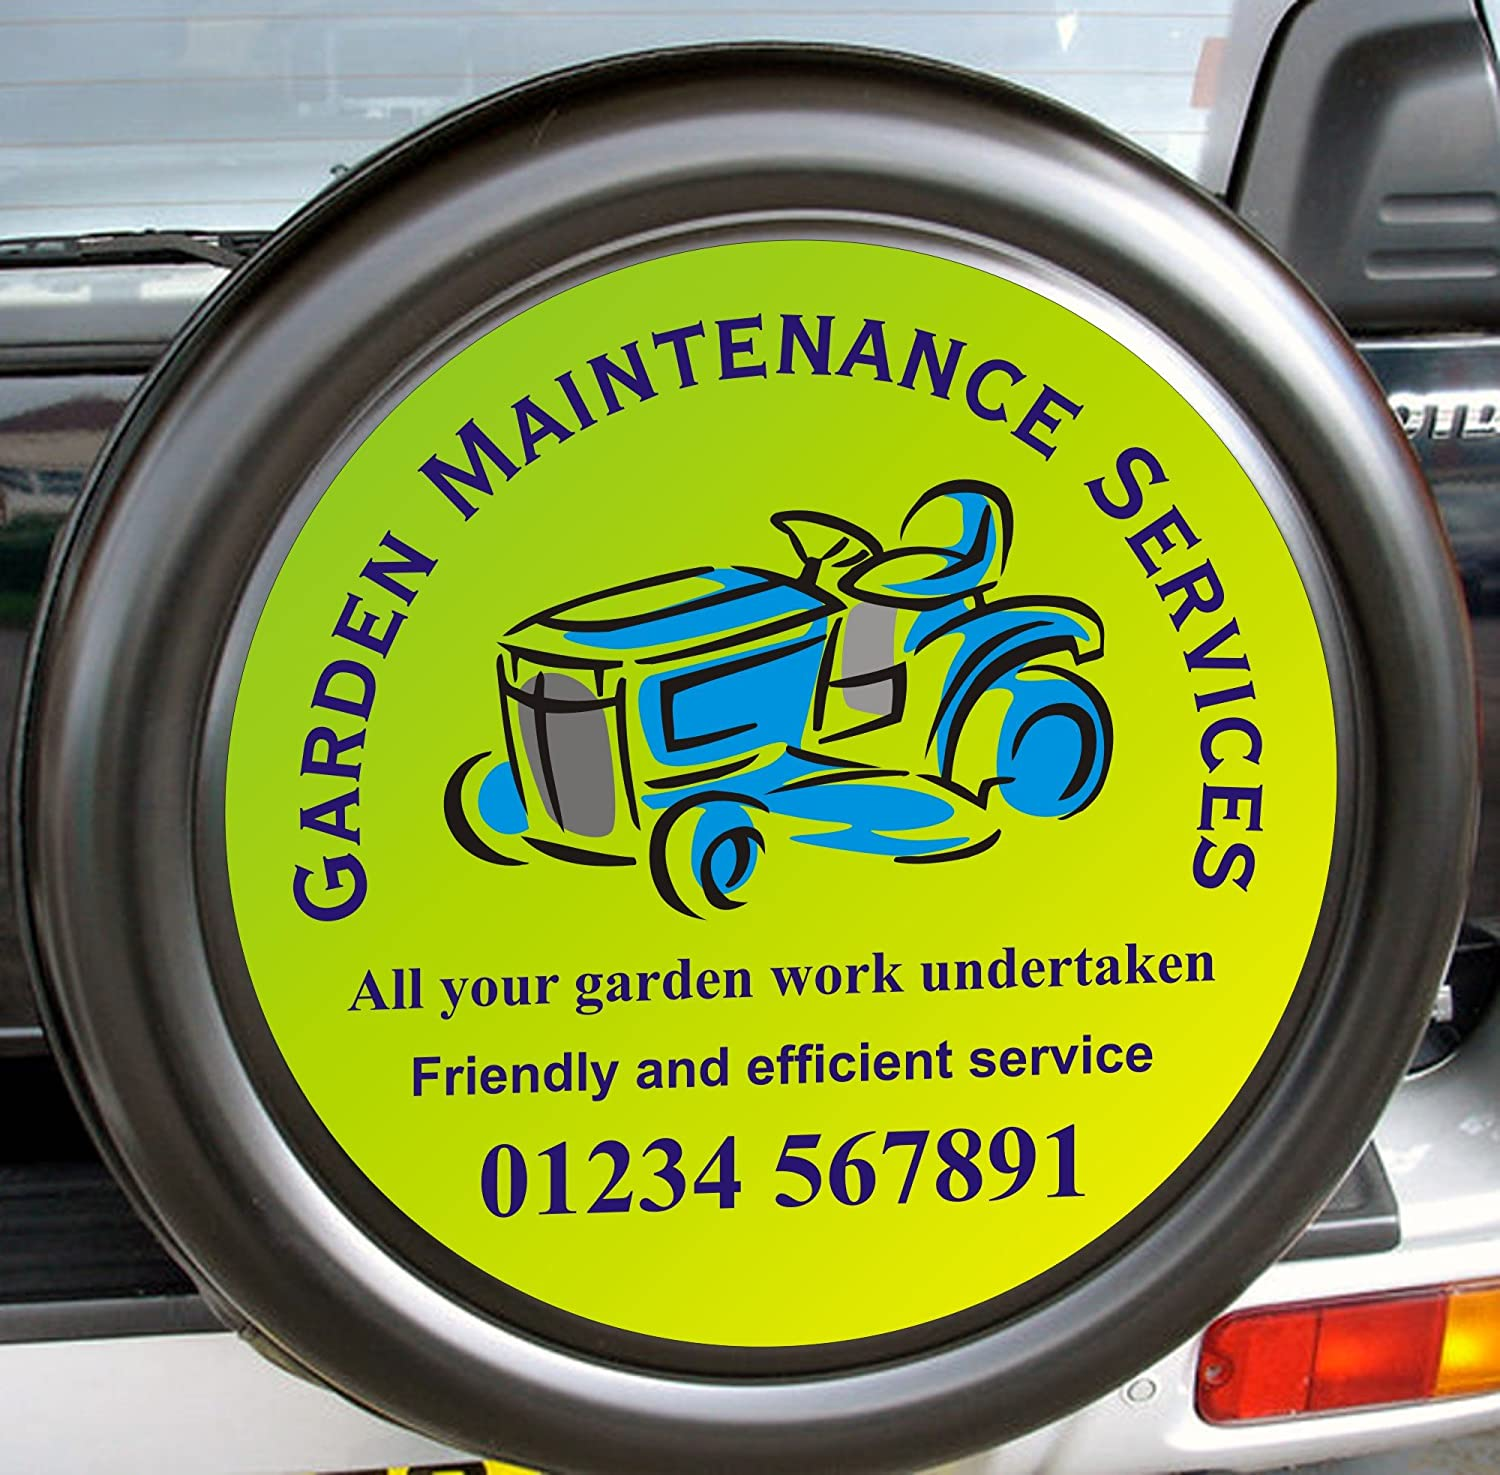 Smarts Art Spare wheel cover decals personalised your business advertise 550mm free design